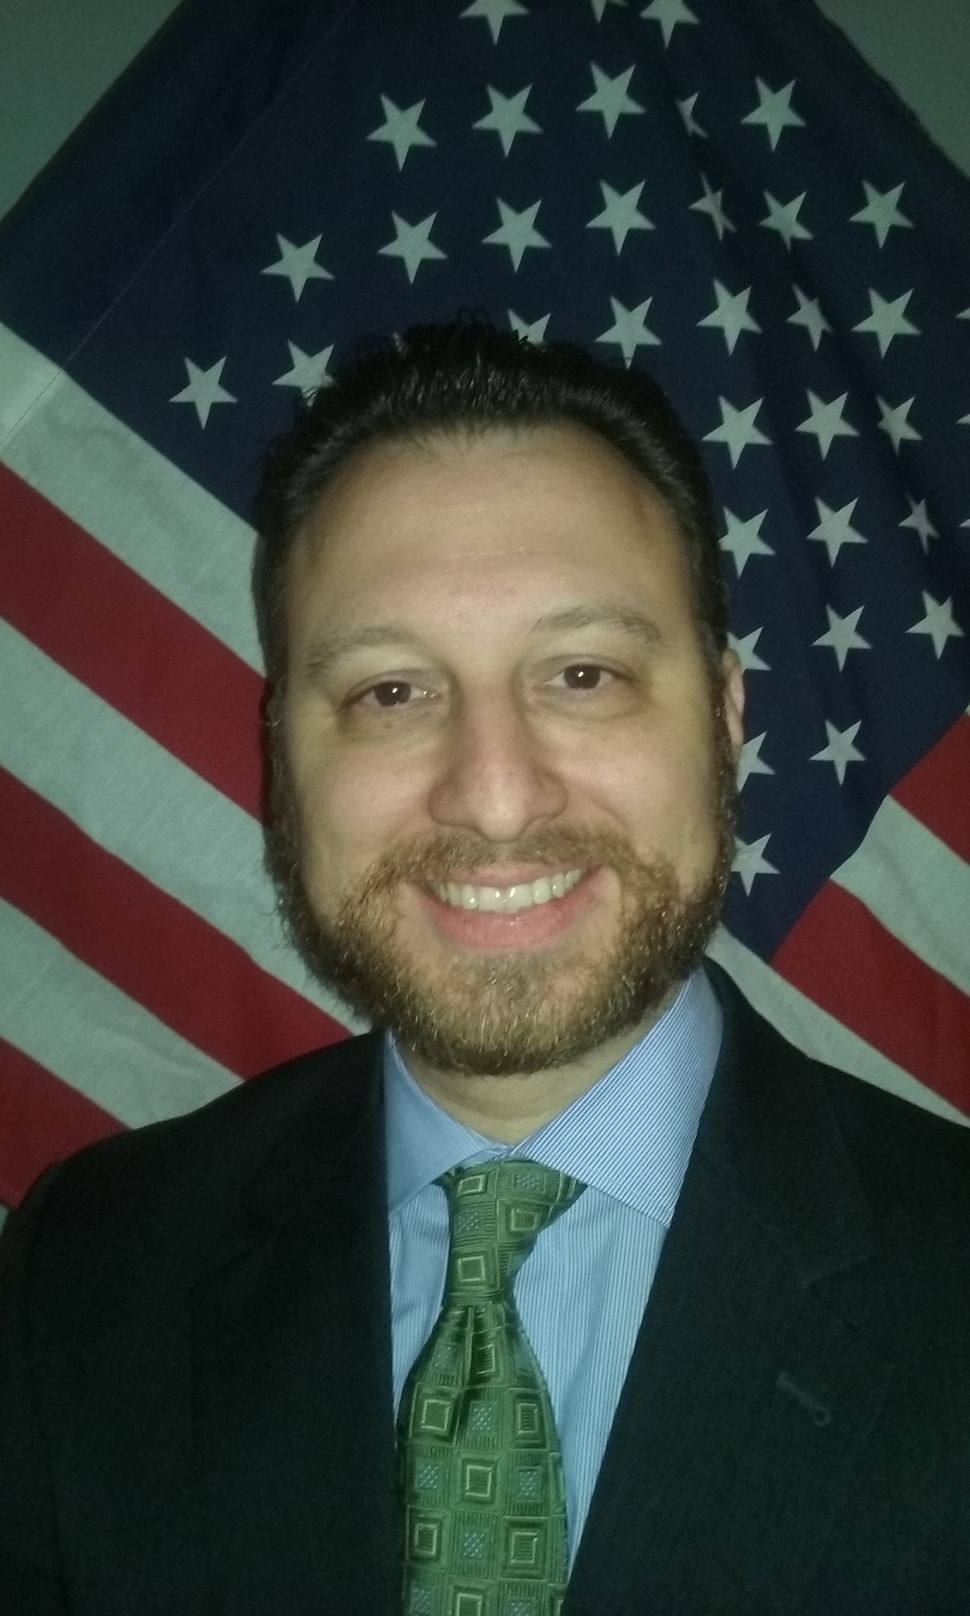 In CD11, Democratic Candidate Stresses Need for Party Unity